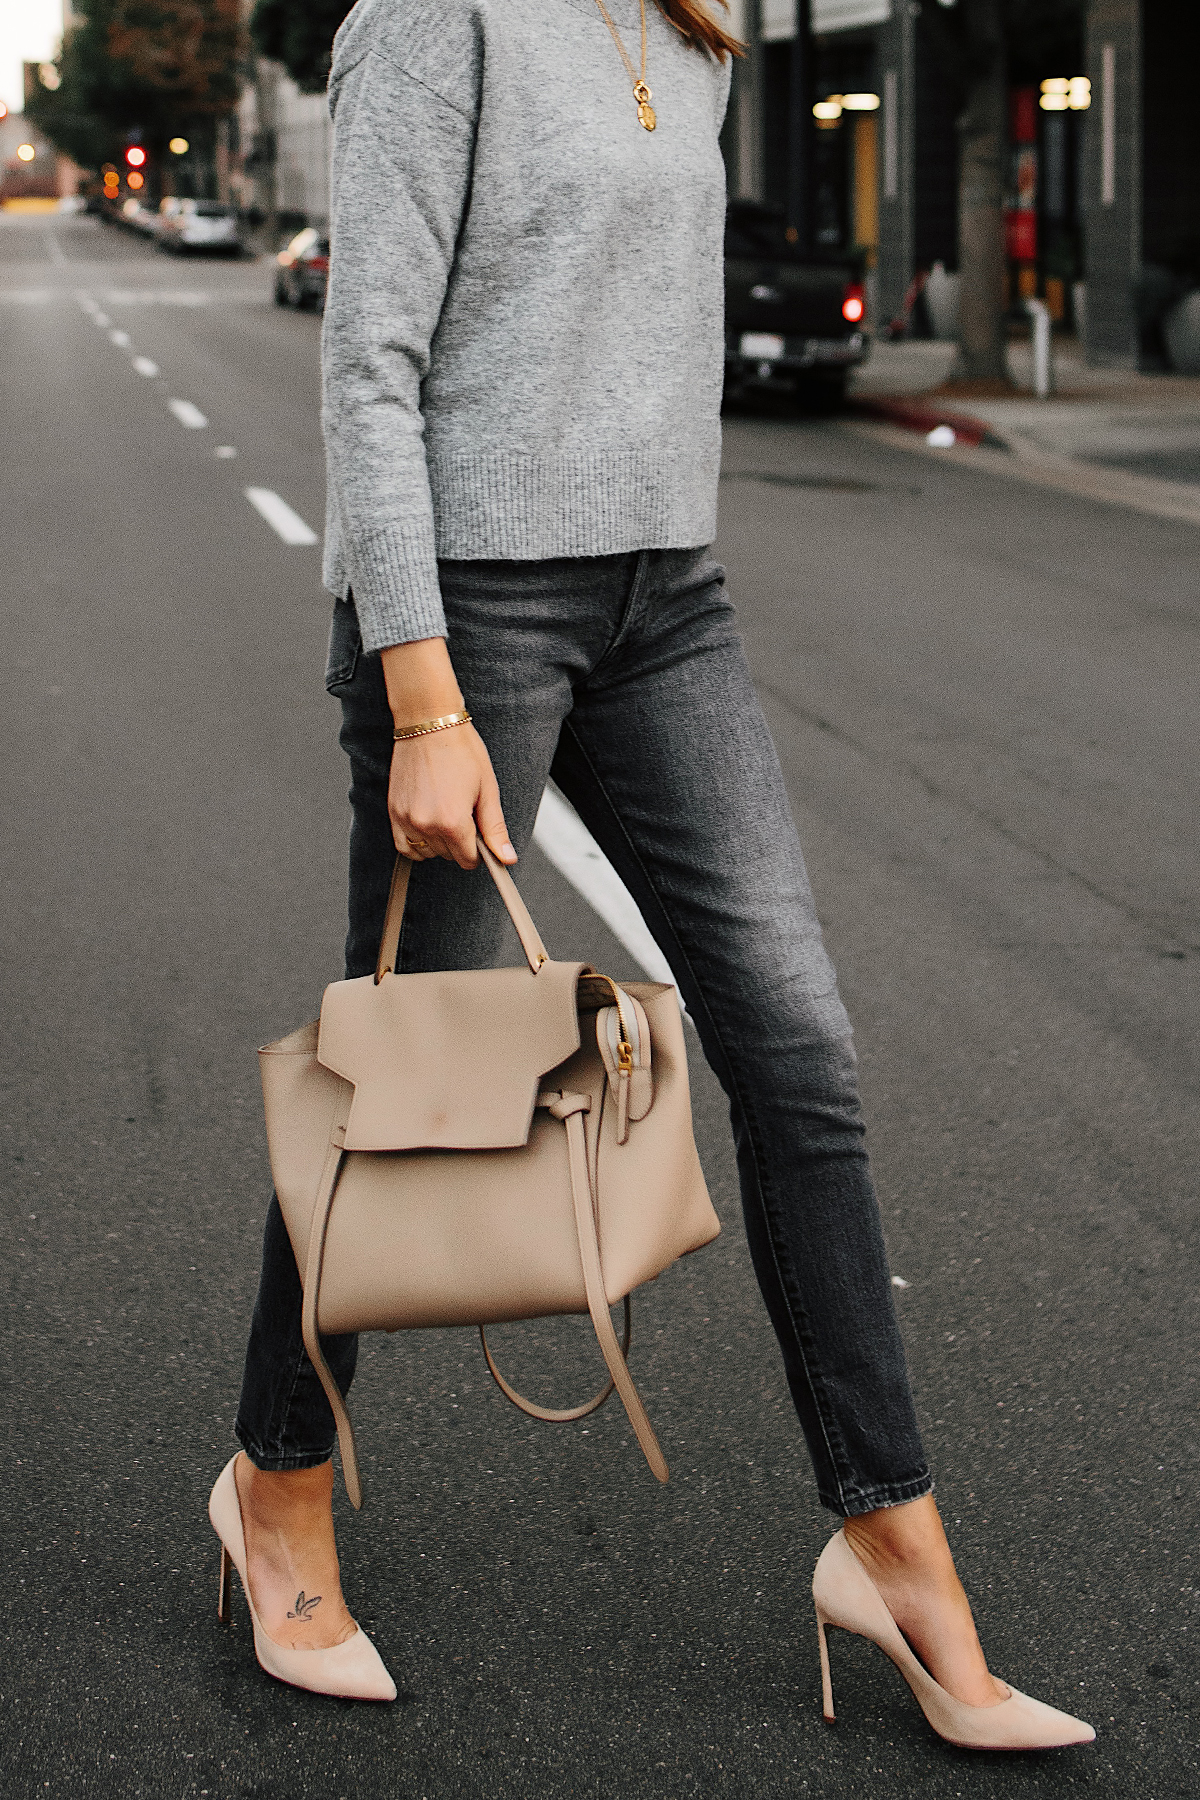 Woman Wearing Levis 501 Grey High Waist Skinny Jeans Grey Sweater Tan Pumps Celine Mini Belt Bag Taupe Fashion Jackson San Diego Fashion Blogger Street Style